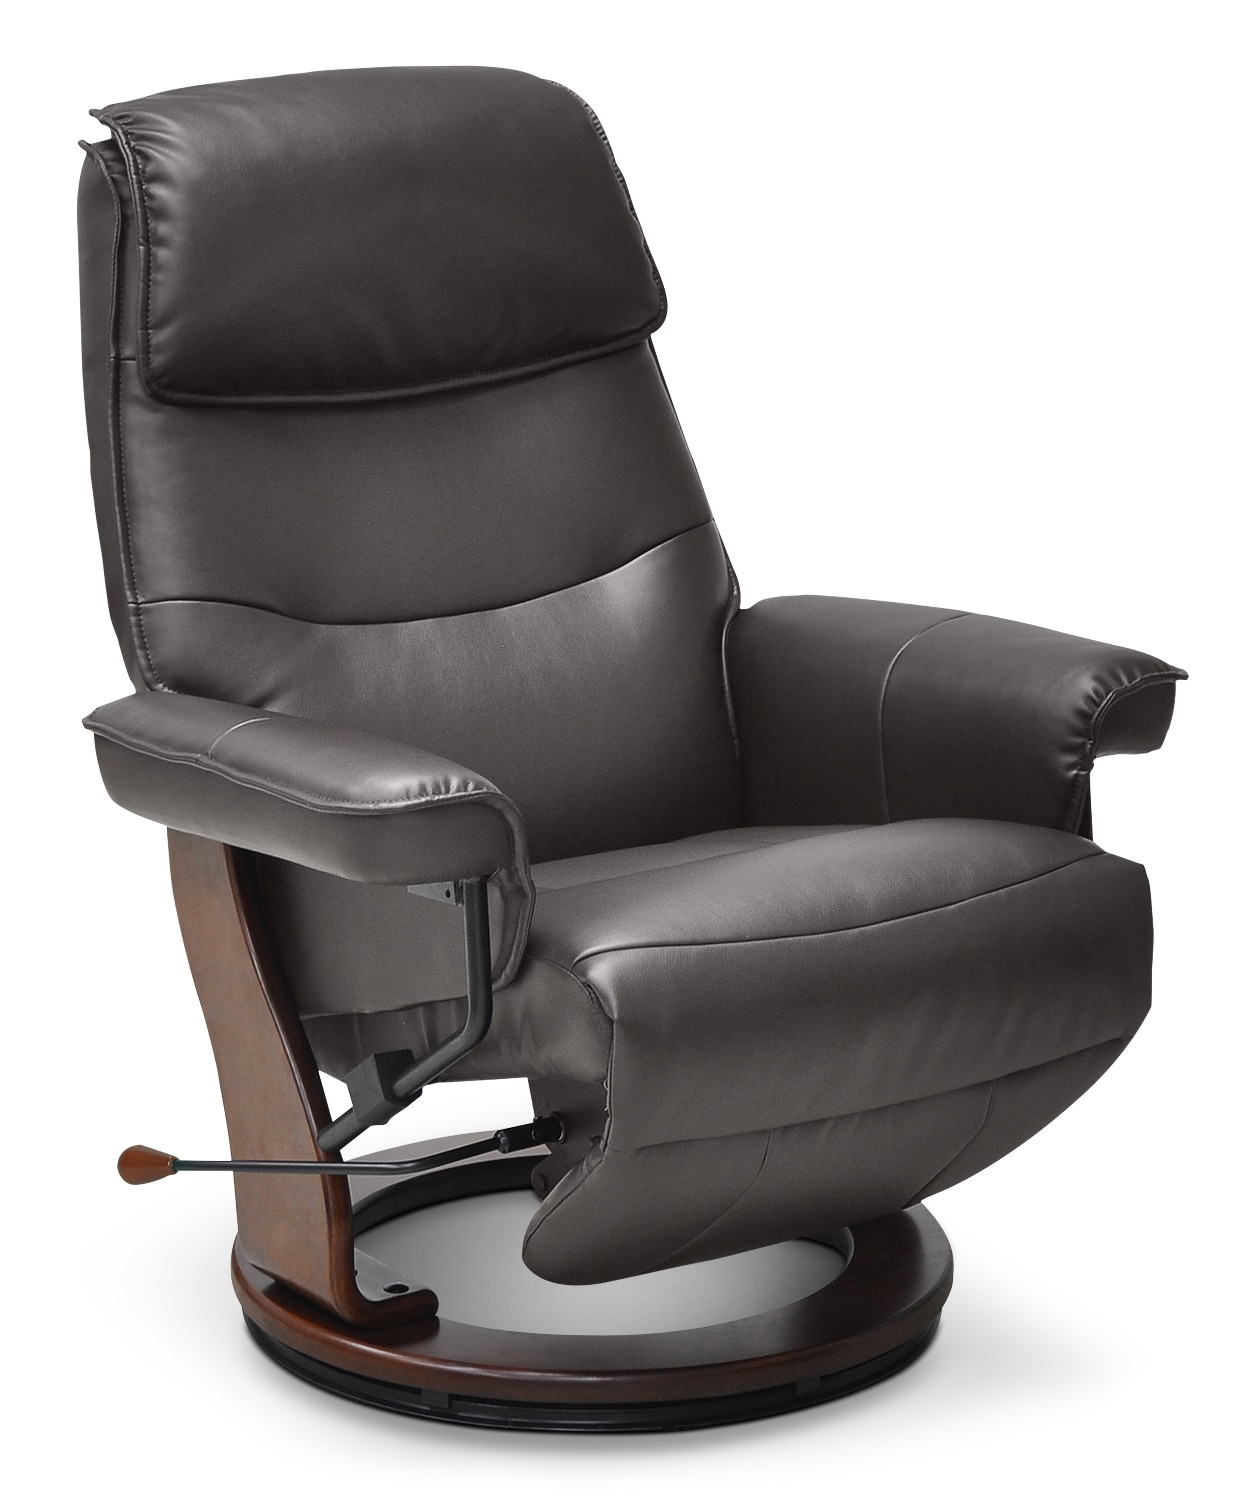 Boyd faux leather reclining chair brown united for Chair recliner